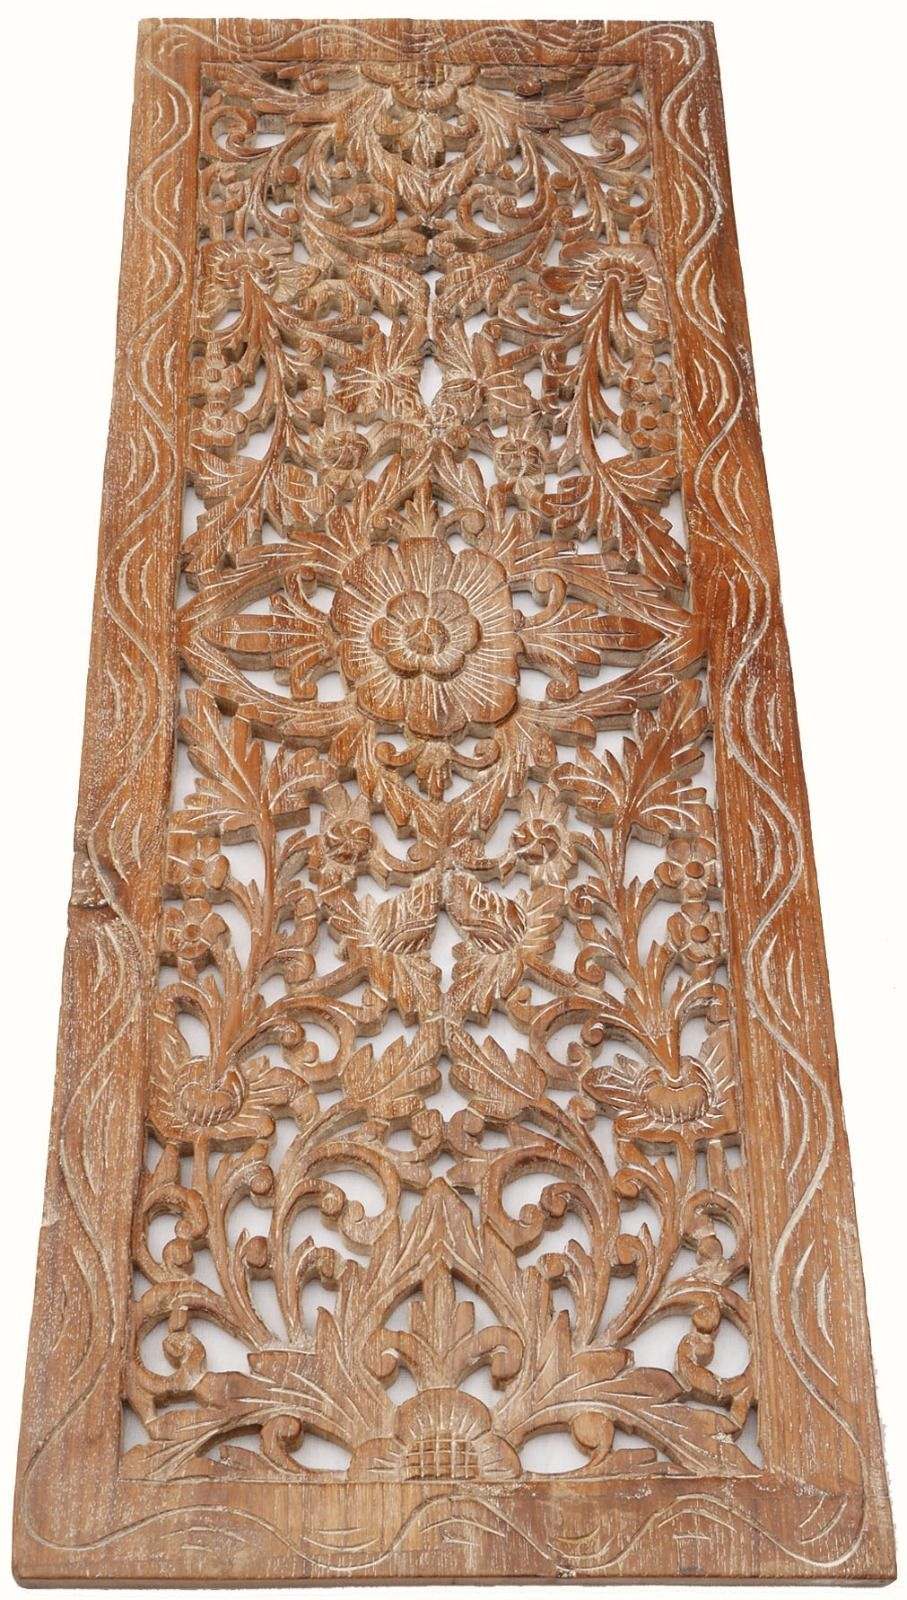 White Wood Wall Art Asian Carved Wood Wall Decor Panelfloral Wood Wall Artwhite